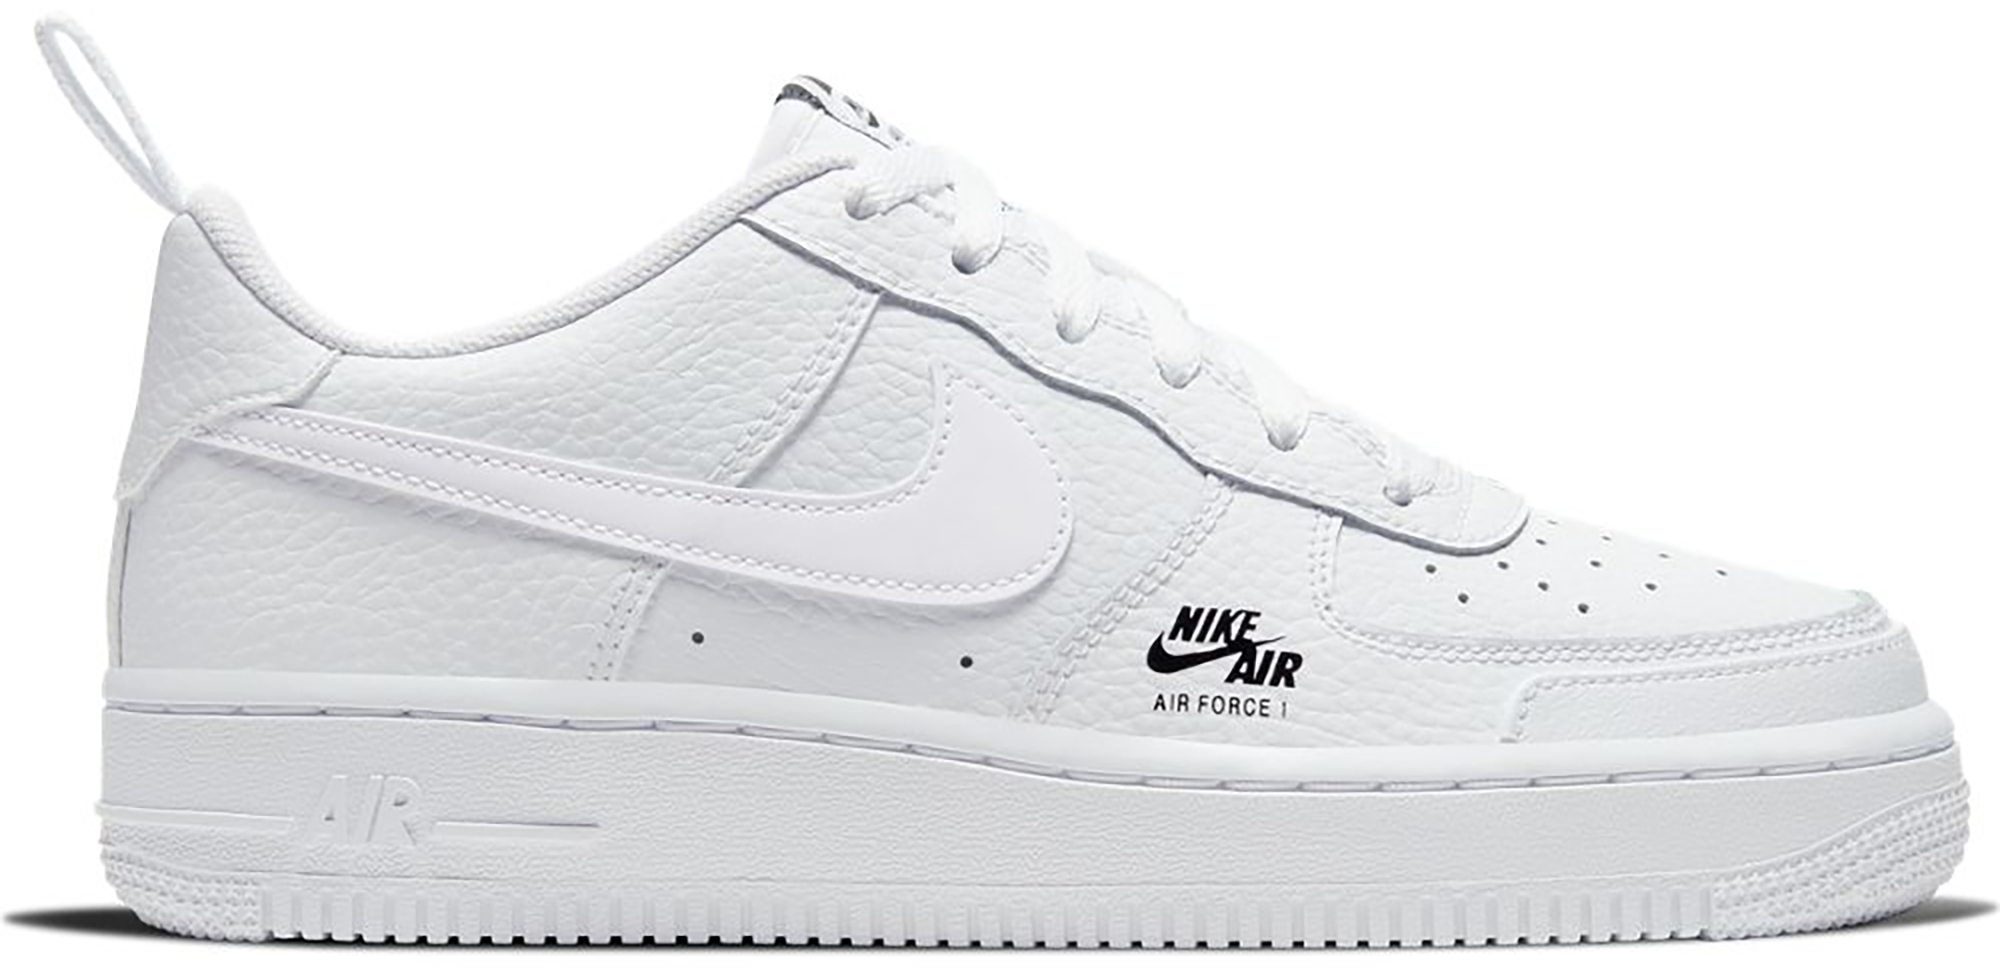 Nike Air Force 1 Low White Grey Fog (GS